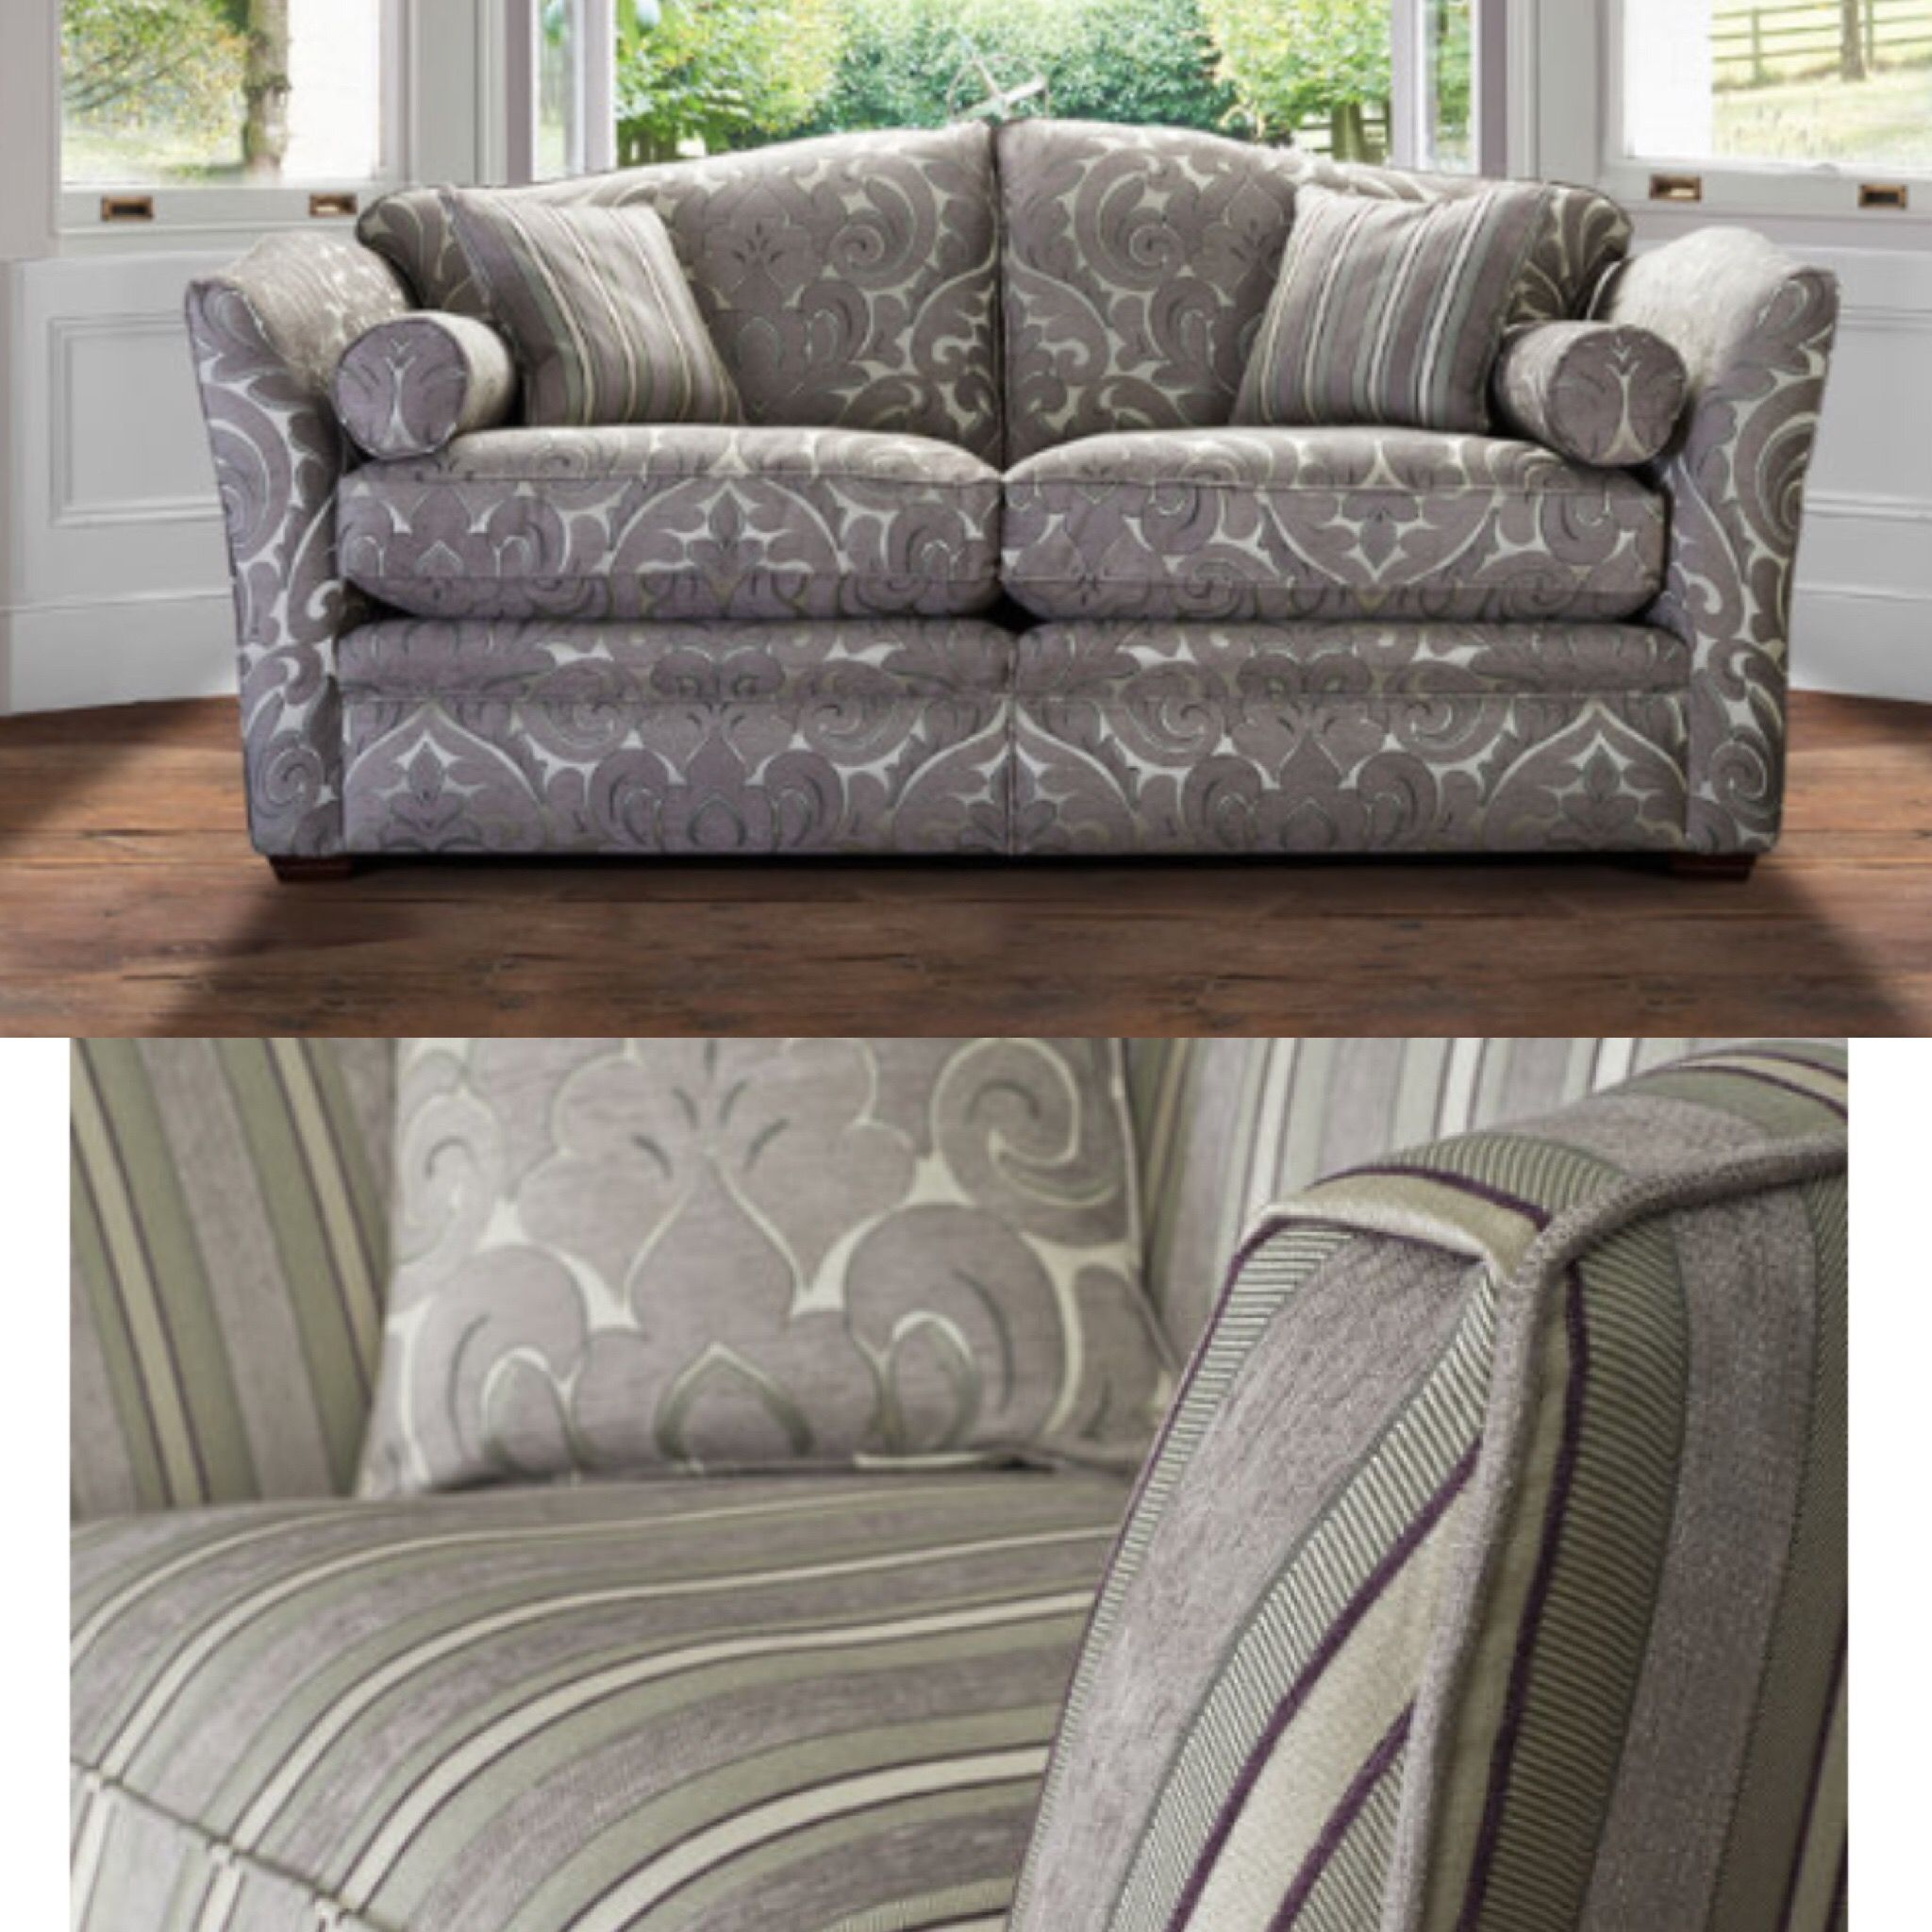 Parker knoll Burlington large floral 2 seater sofa and contrasting